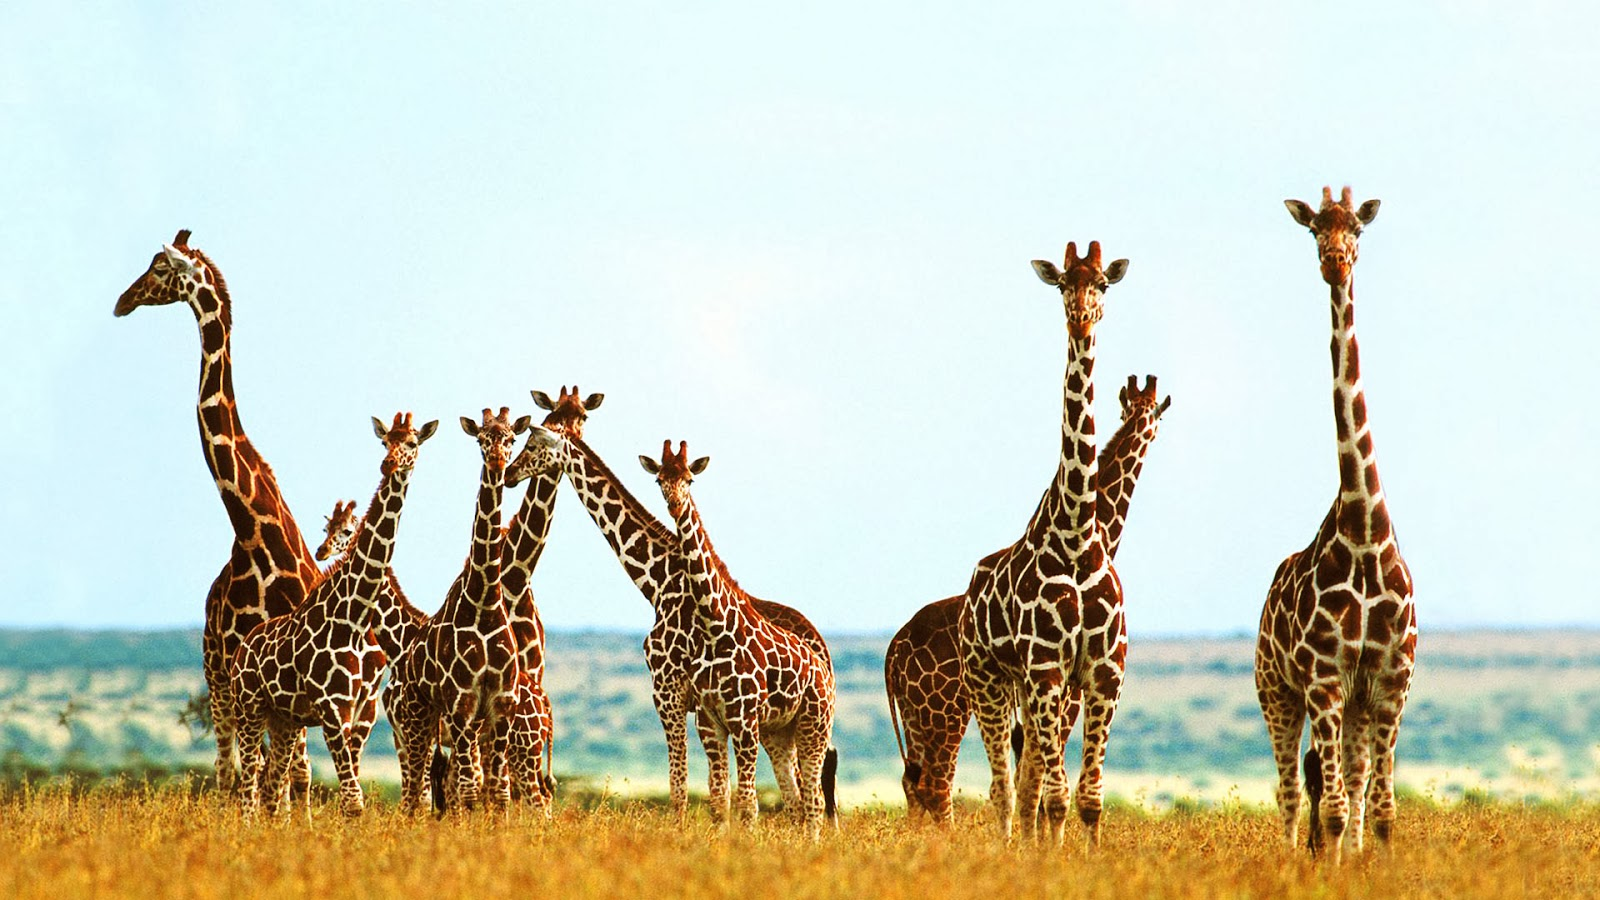 30 Stunning Full HD Wallpapers of Giraffe | Hindi Motivational Quotes | HD Wallpapers | Windows ...